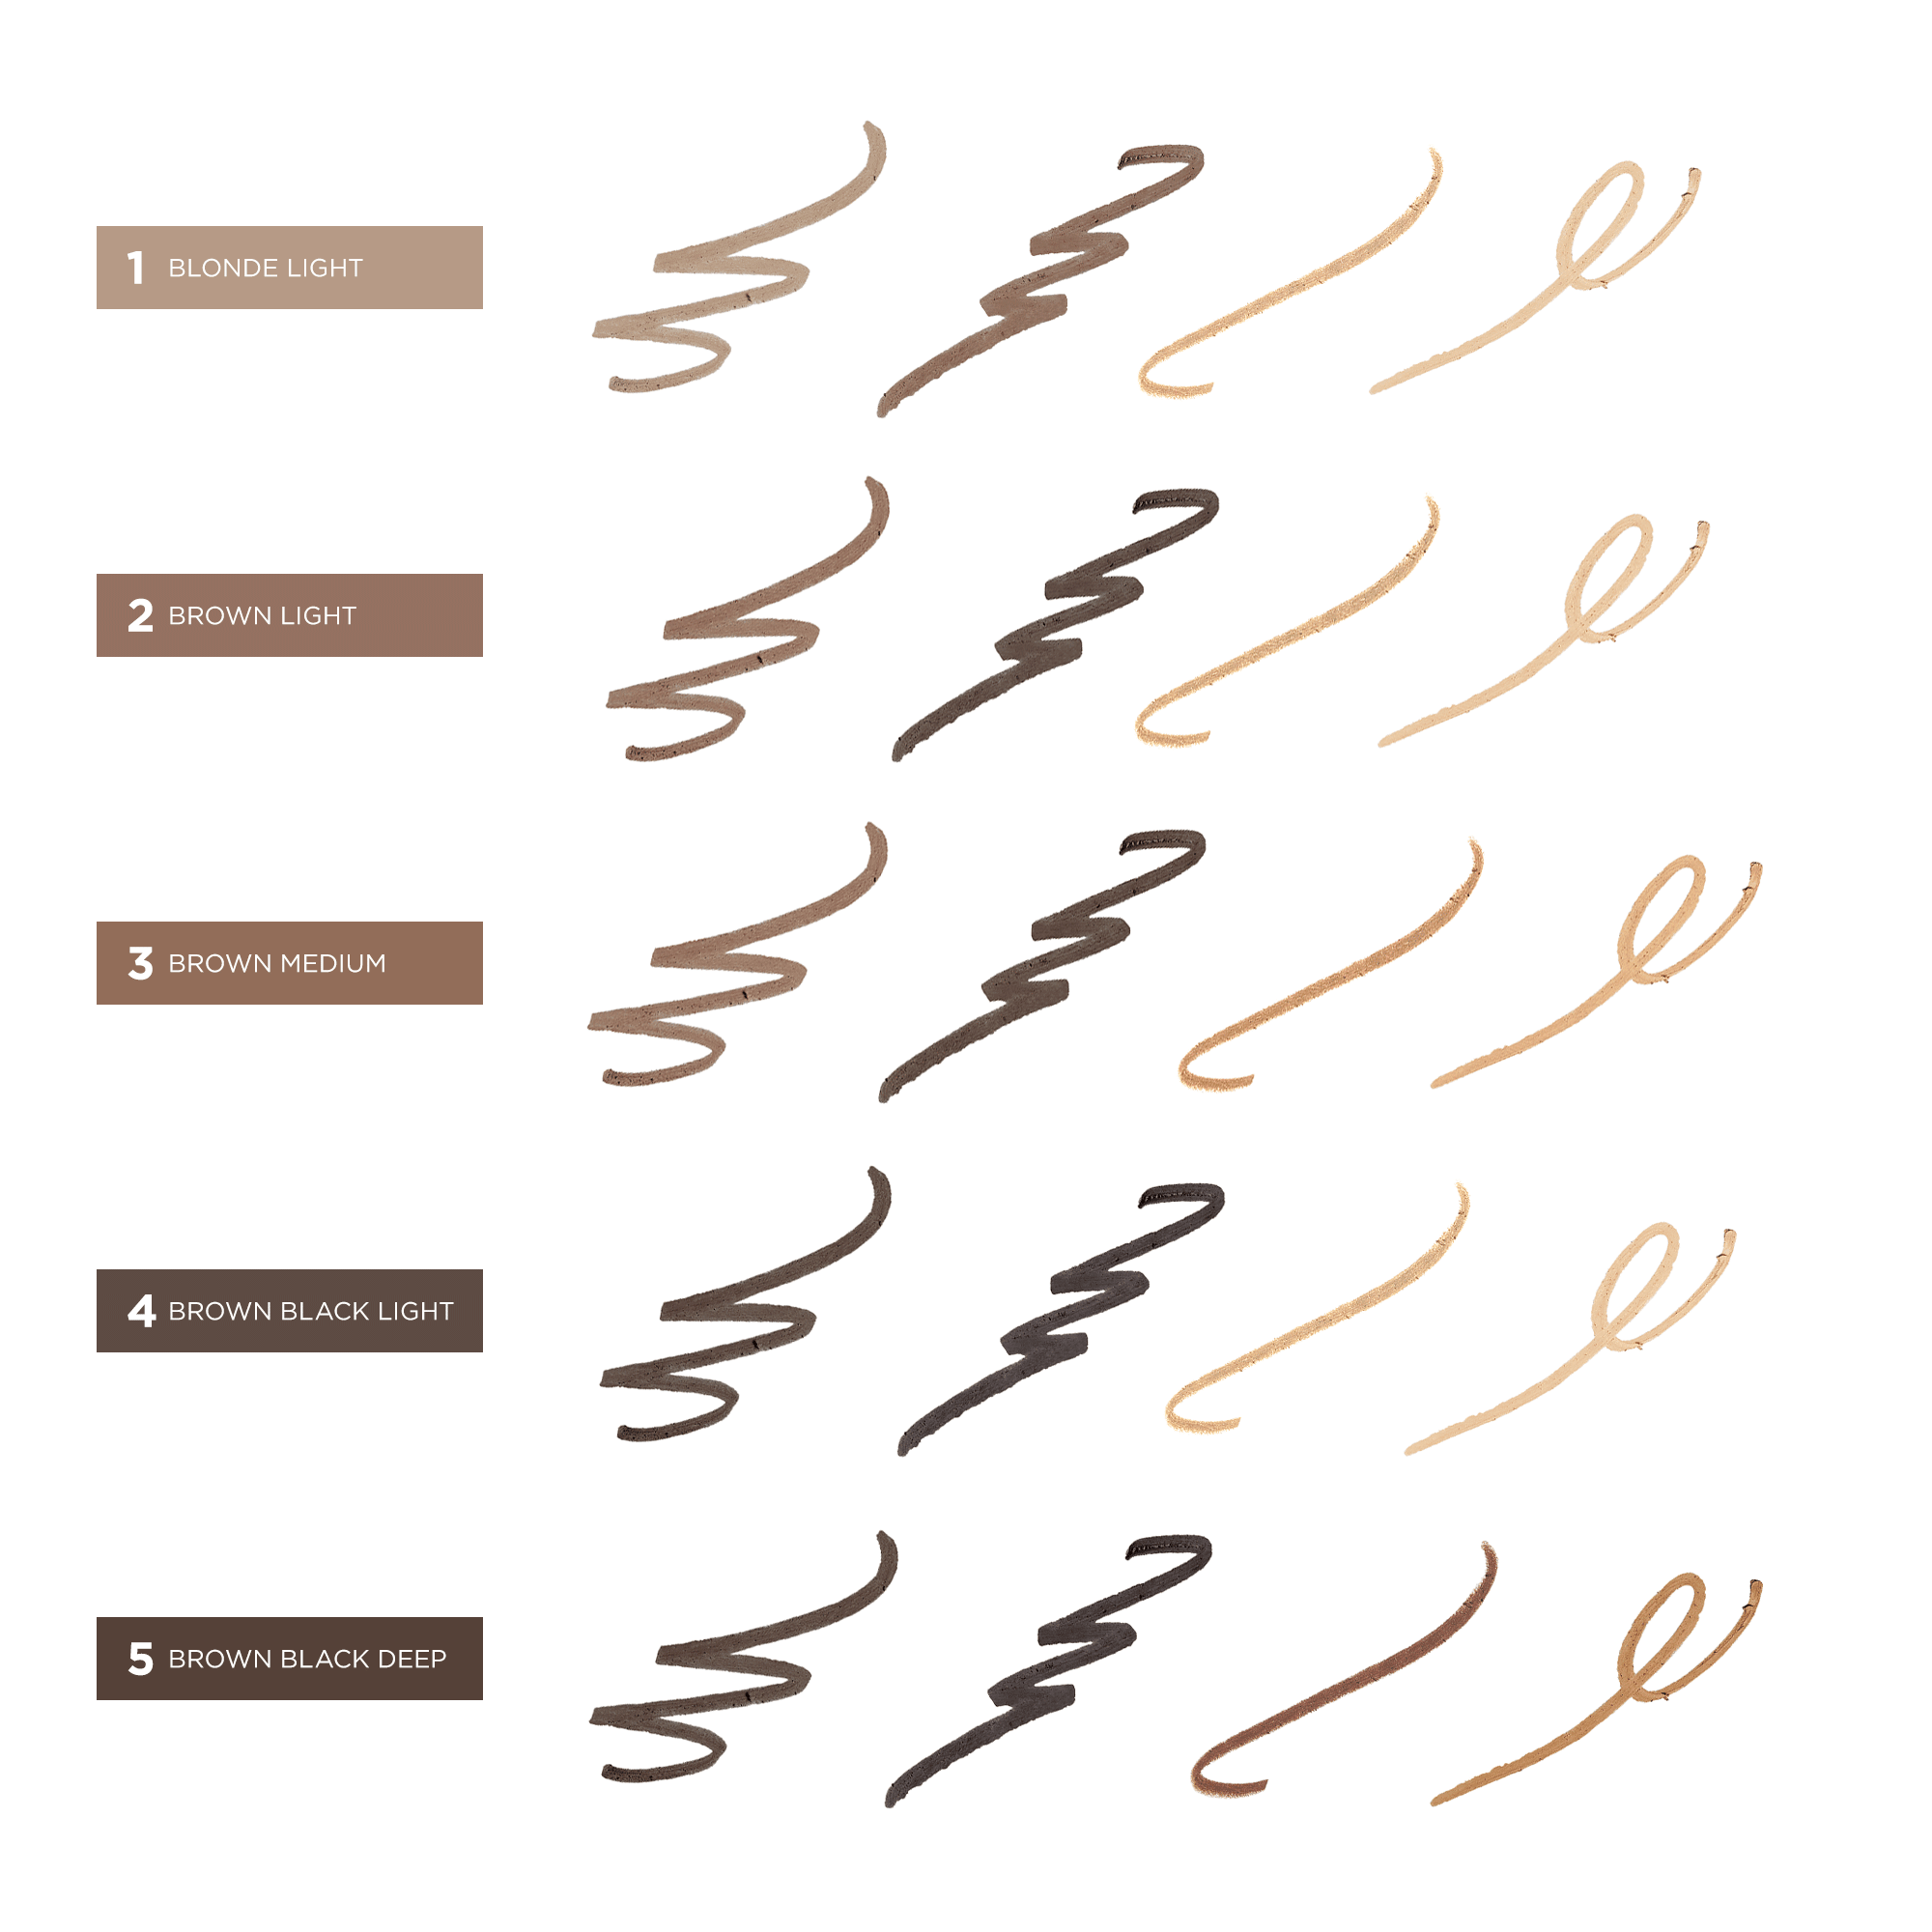 Brow Contour Pro 4-In-1 Defining & Highlighting Pencil